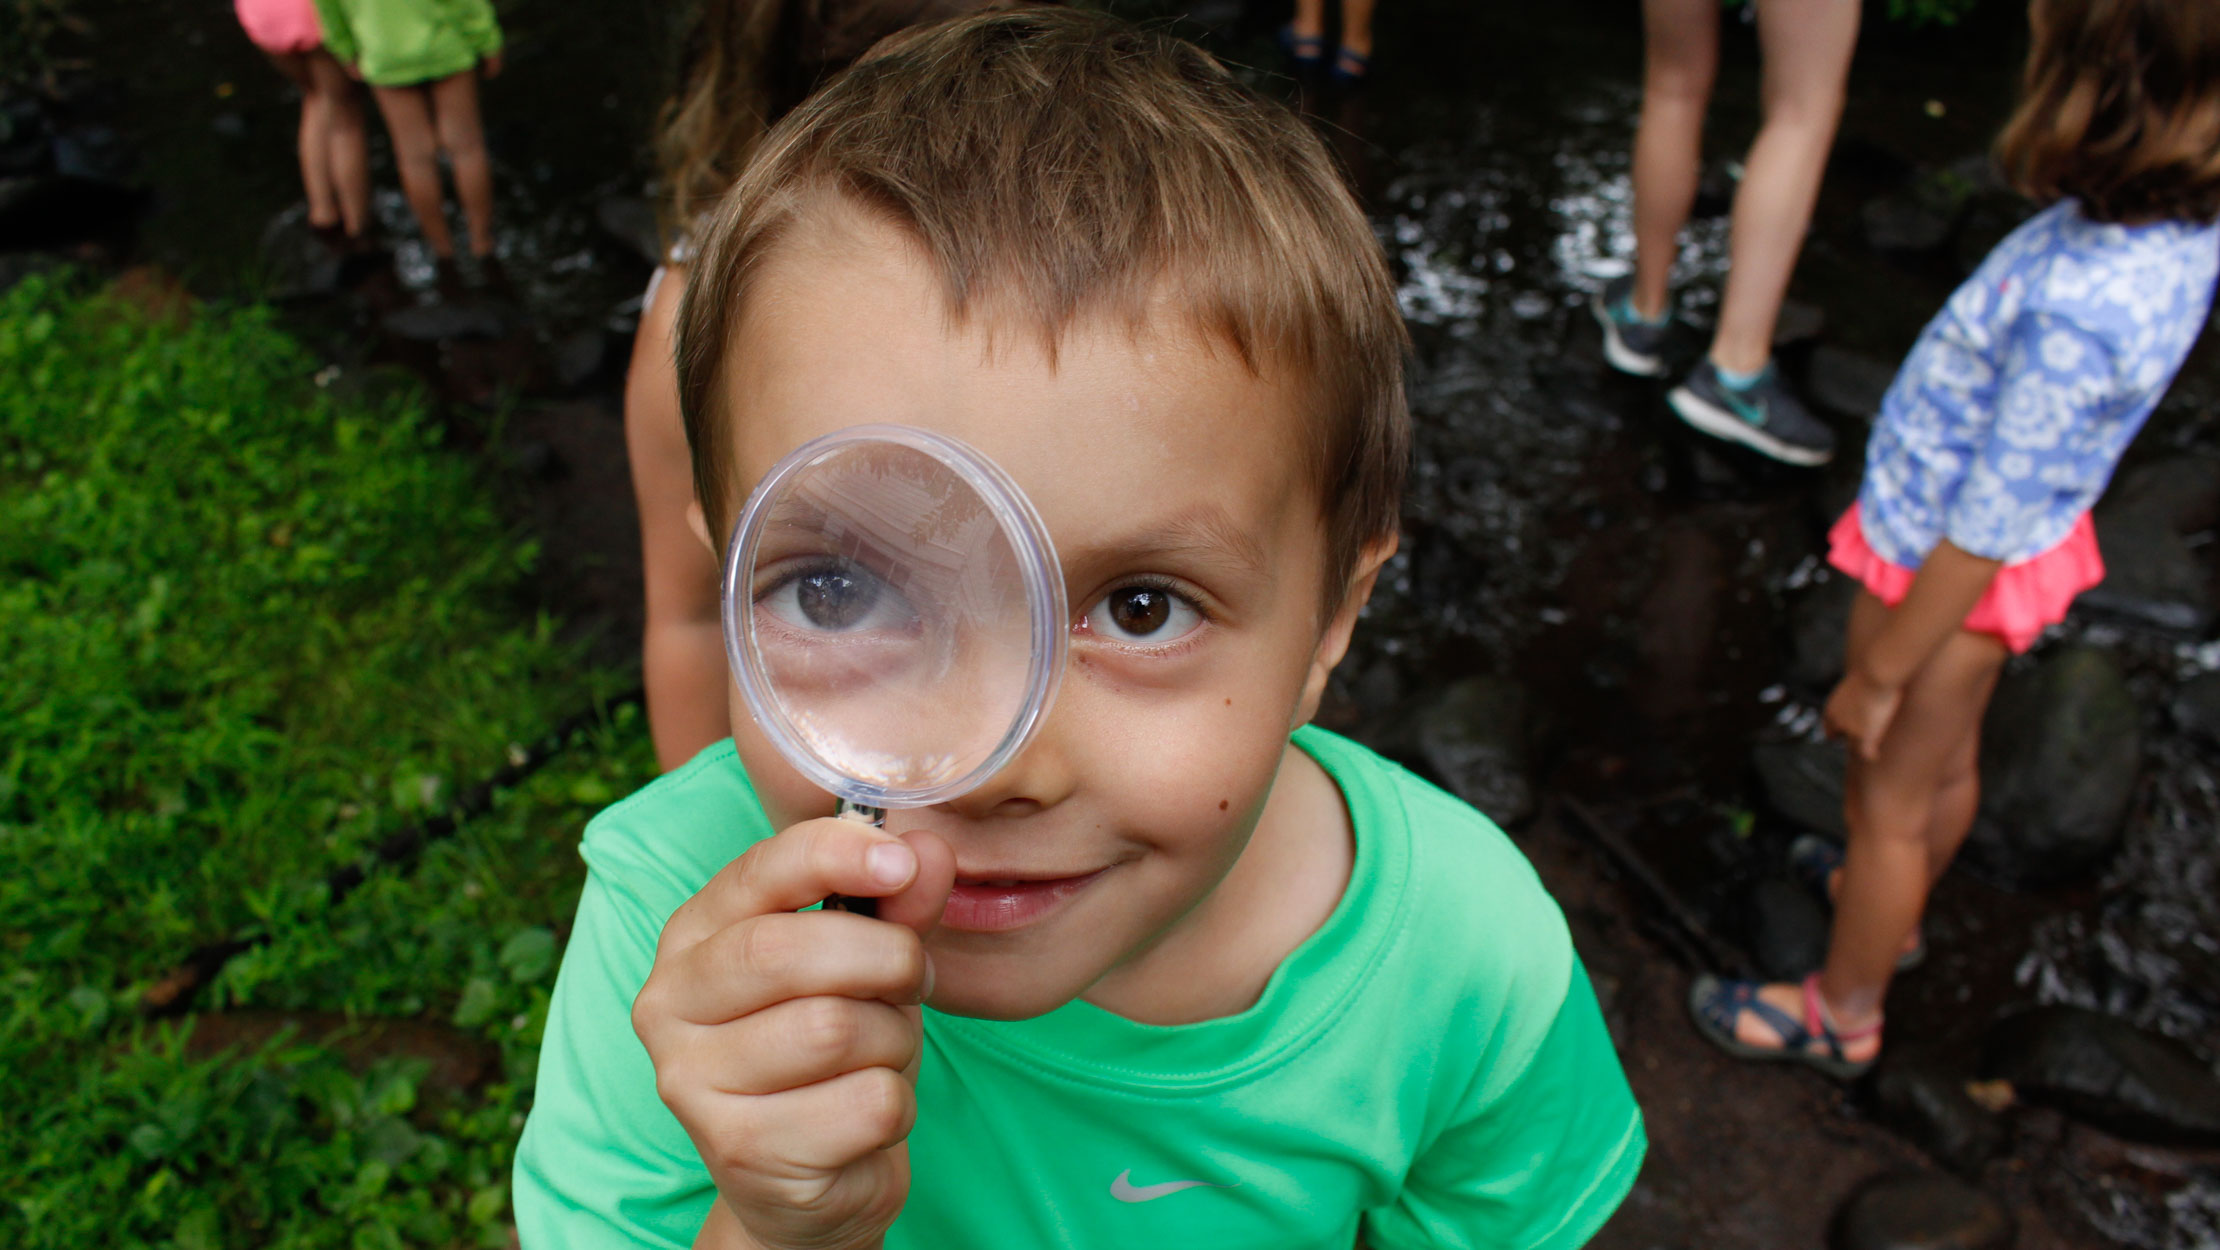 Young camper looking through a magnifying glass